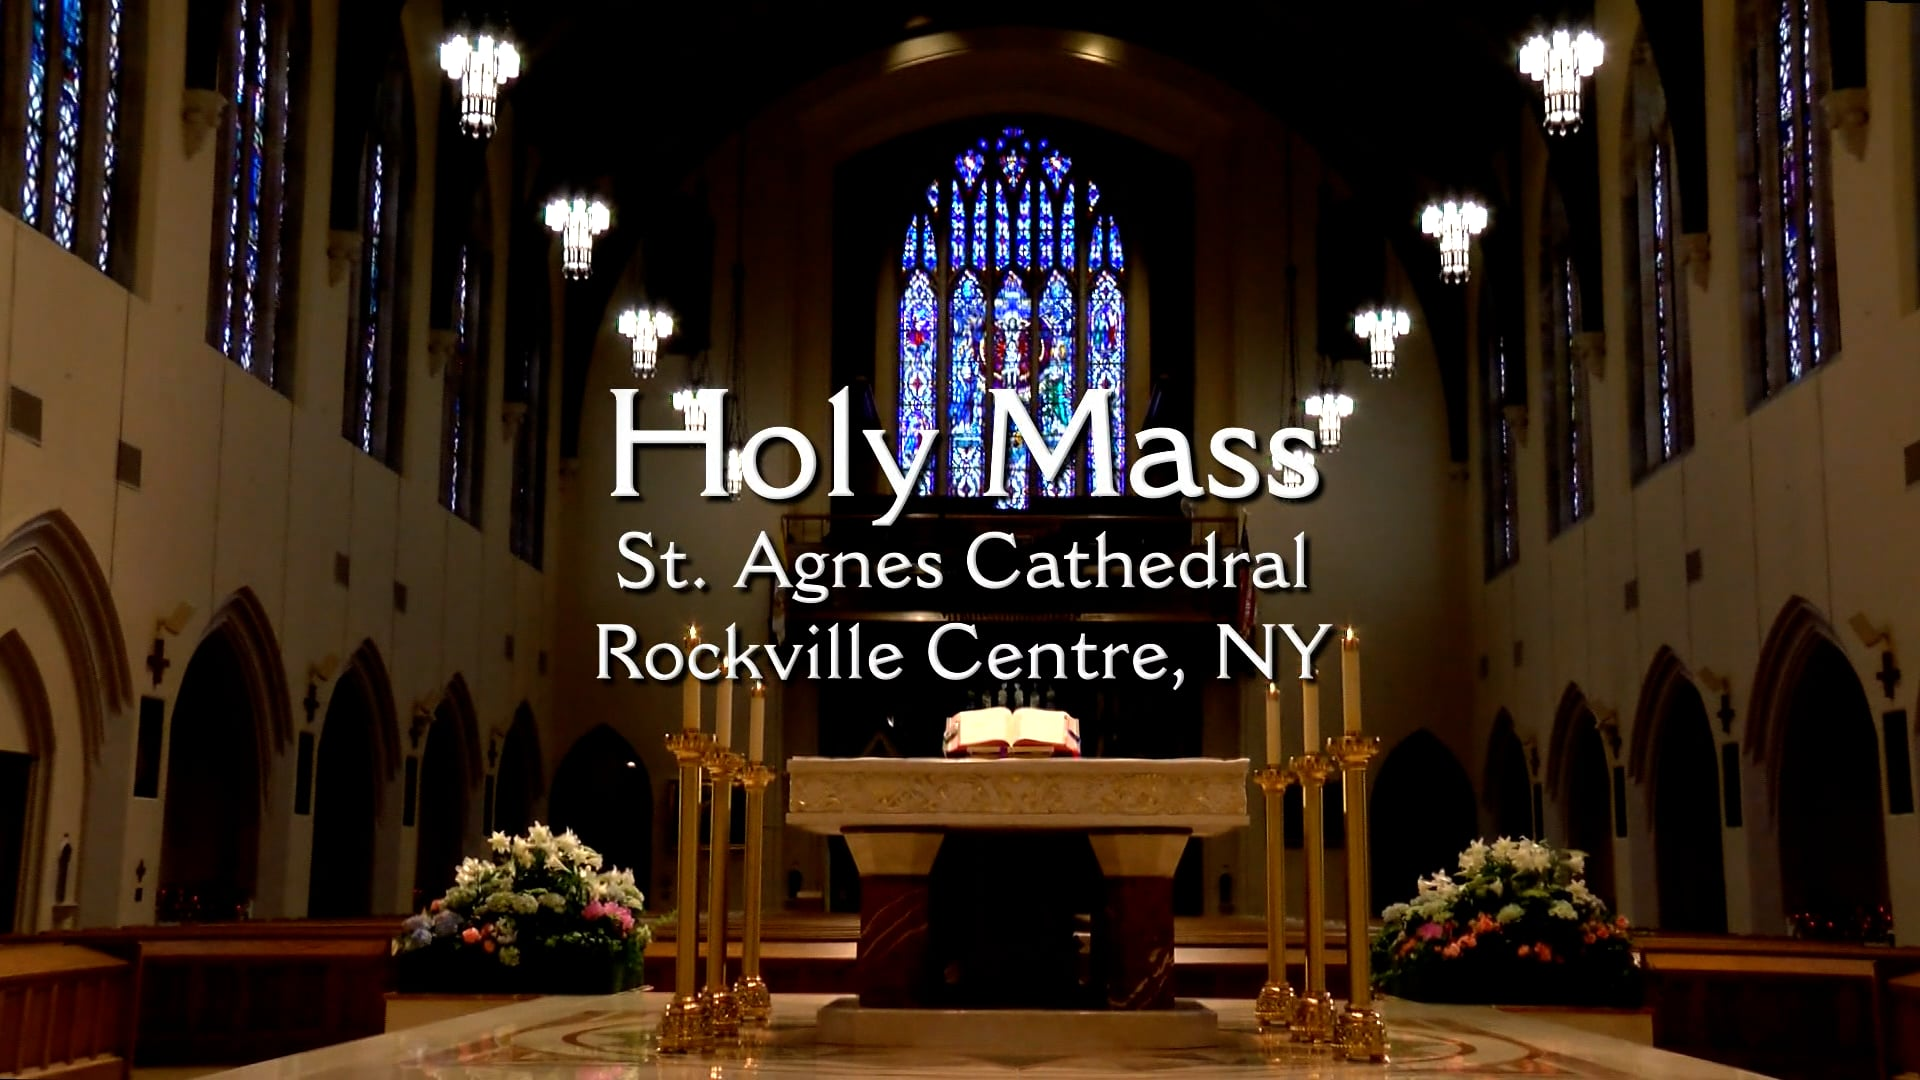 Mass from St. Agnes Cathedral - October 20, 2021